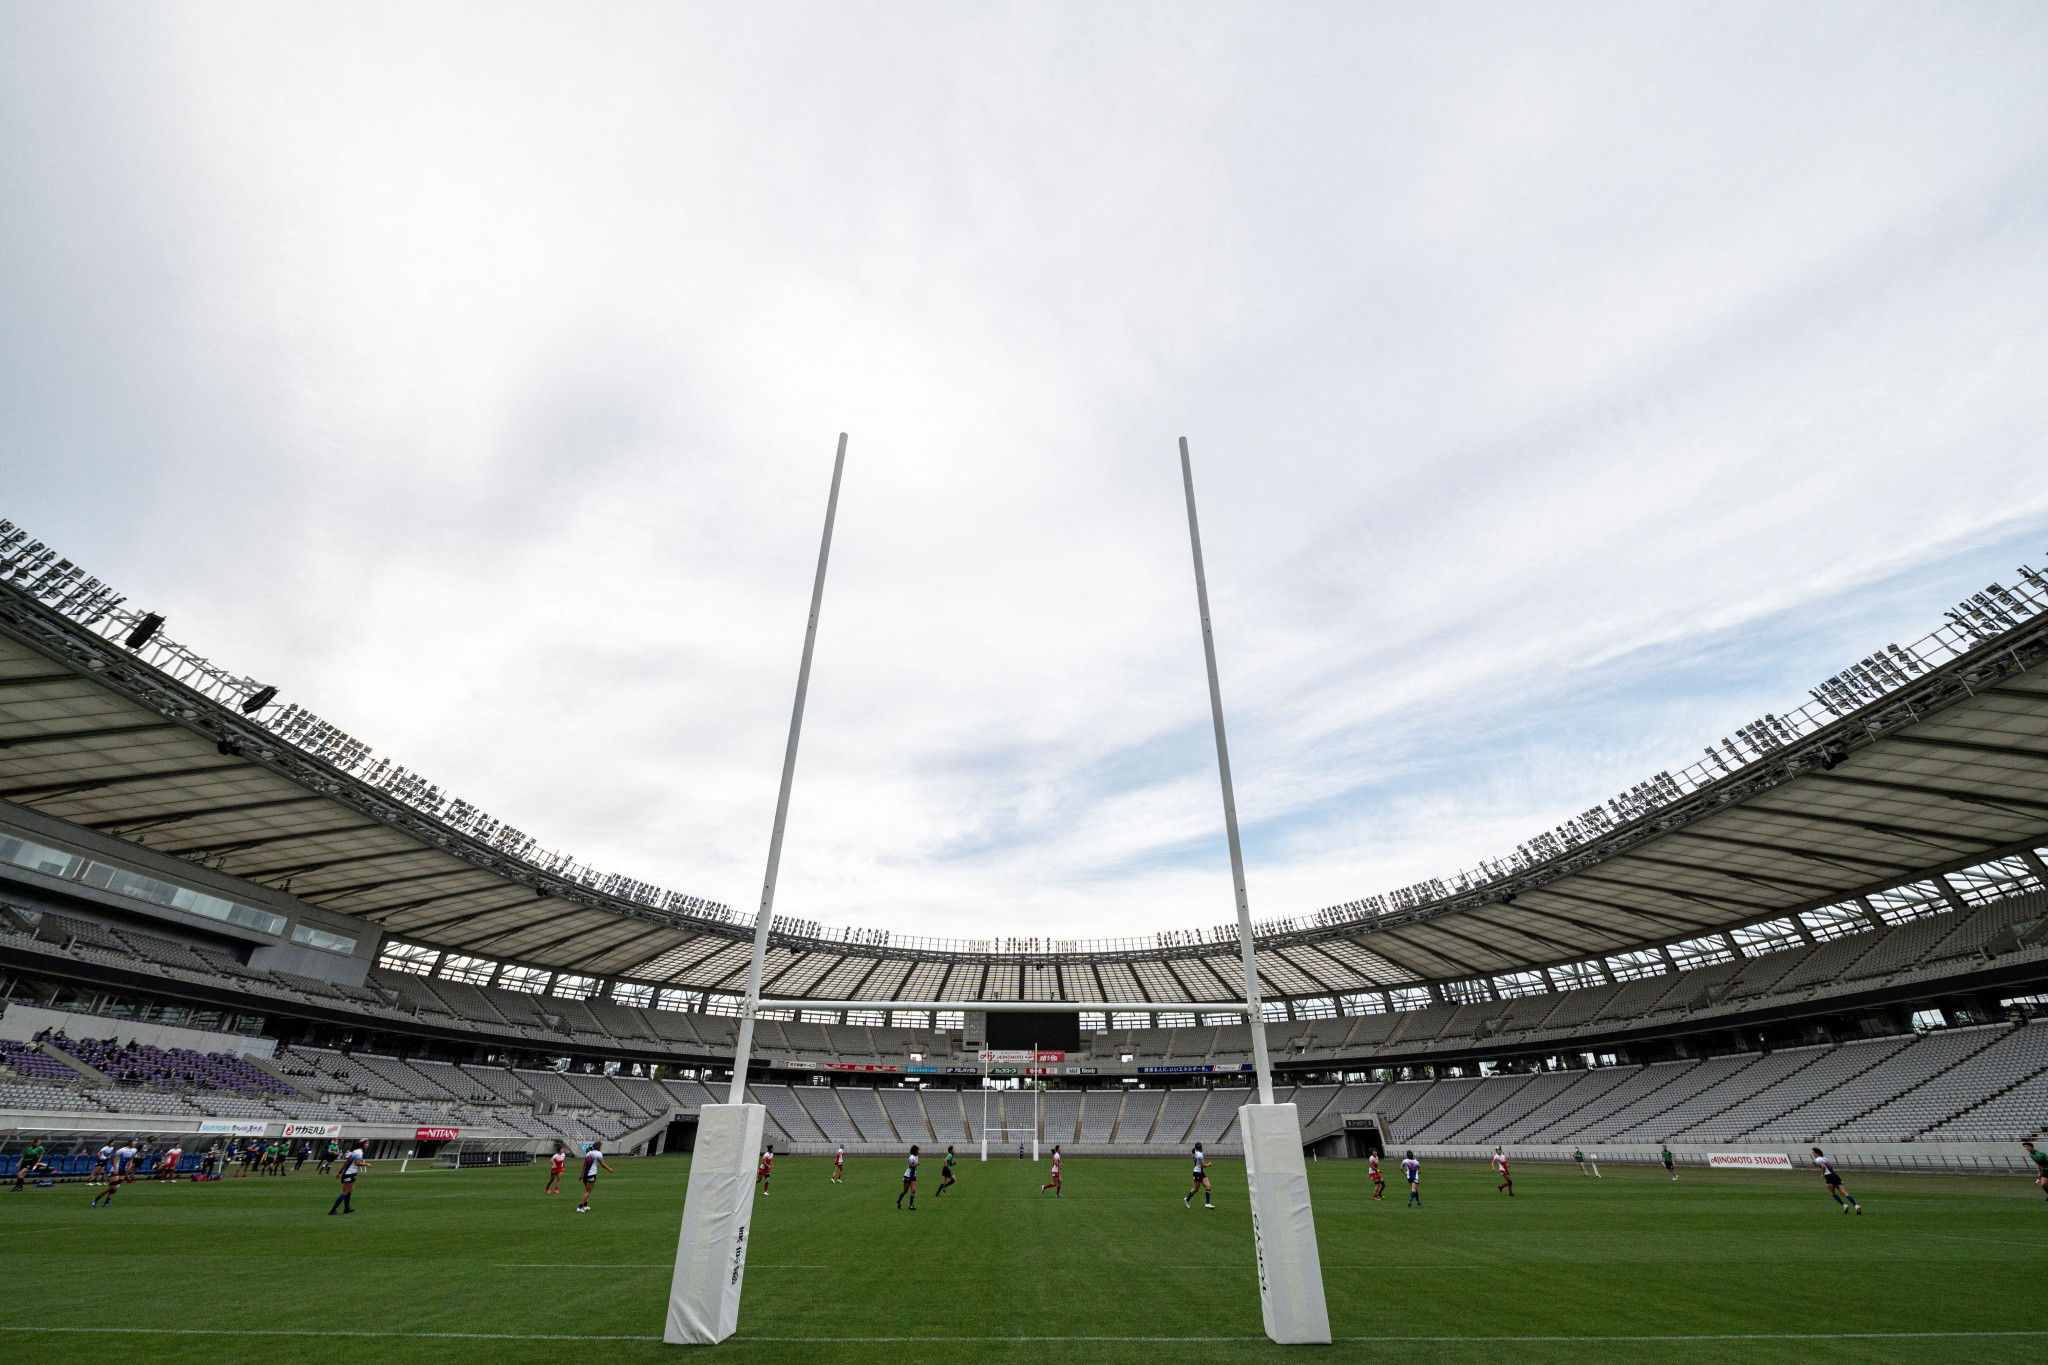 World Rugby to implement governance restructure following review recommendations